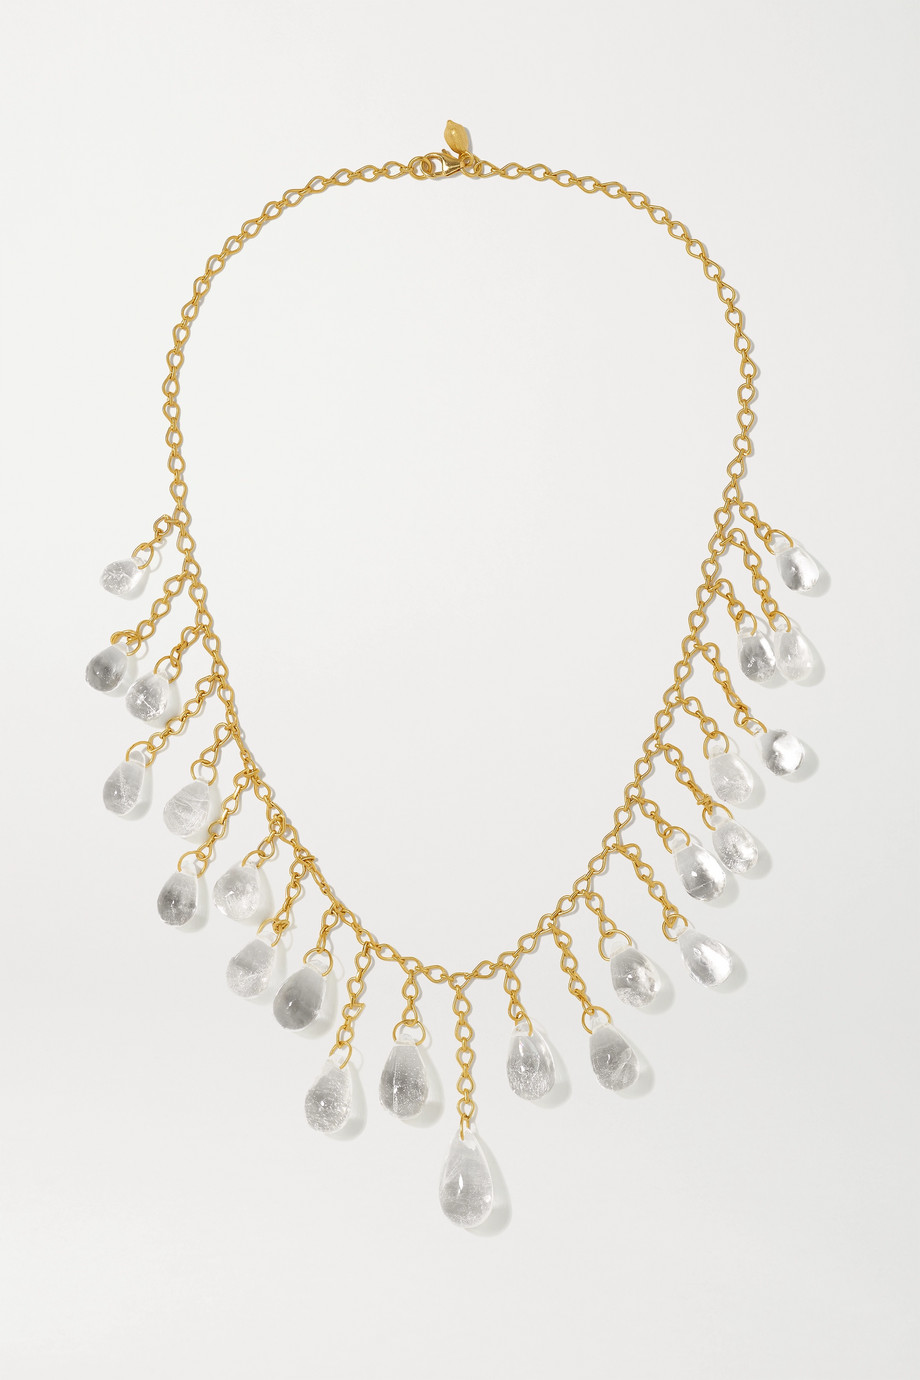 Pippa Small 18-karat gold quartz necklace